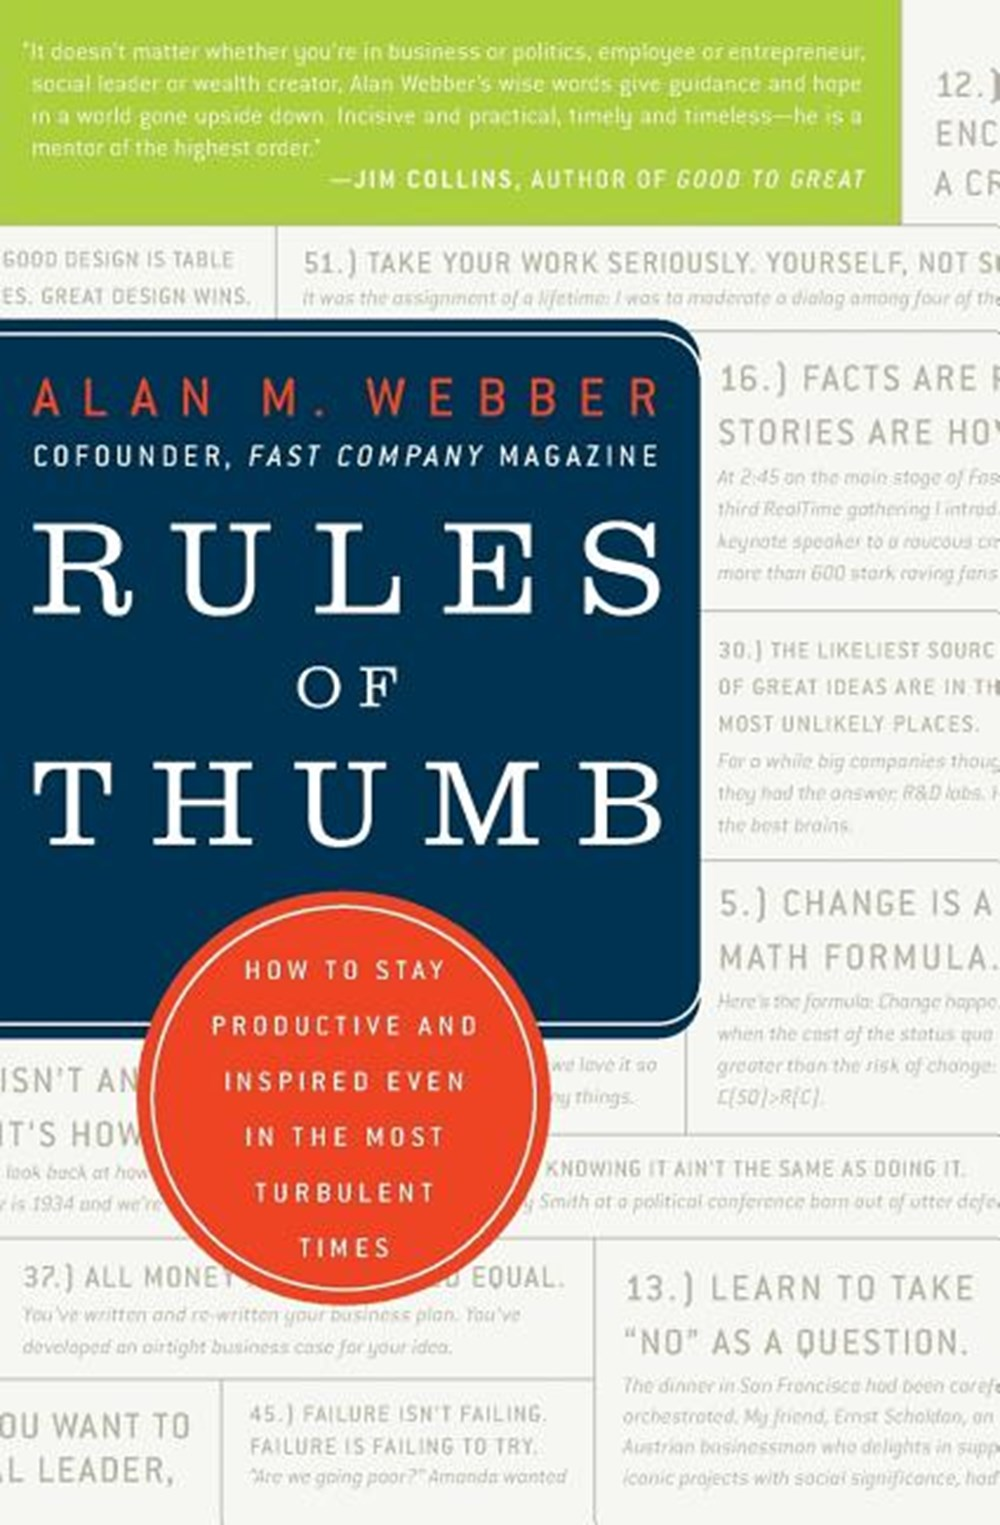 Rules of Thumb How to Stay Productive and Inspired Even in the Most Turbulent Times